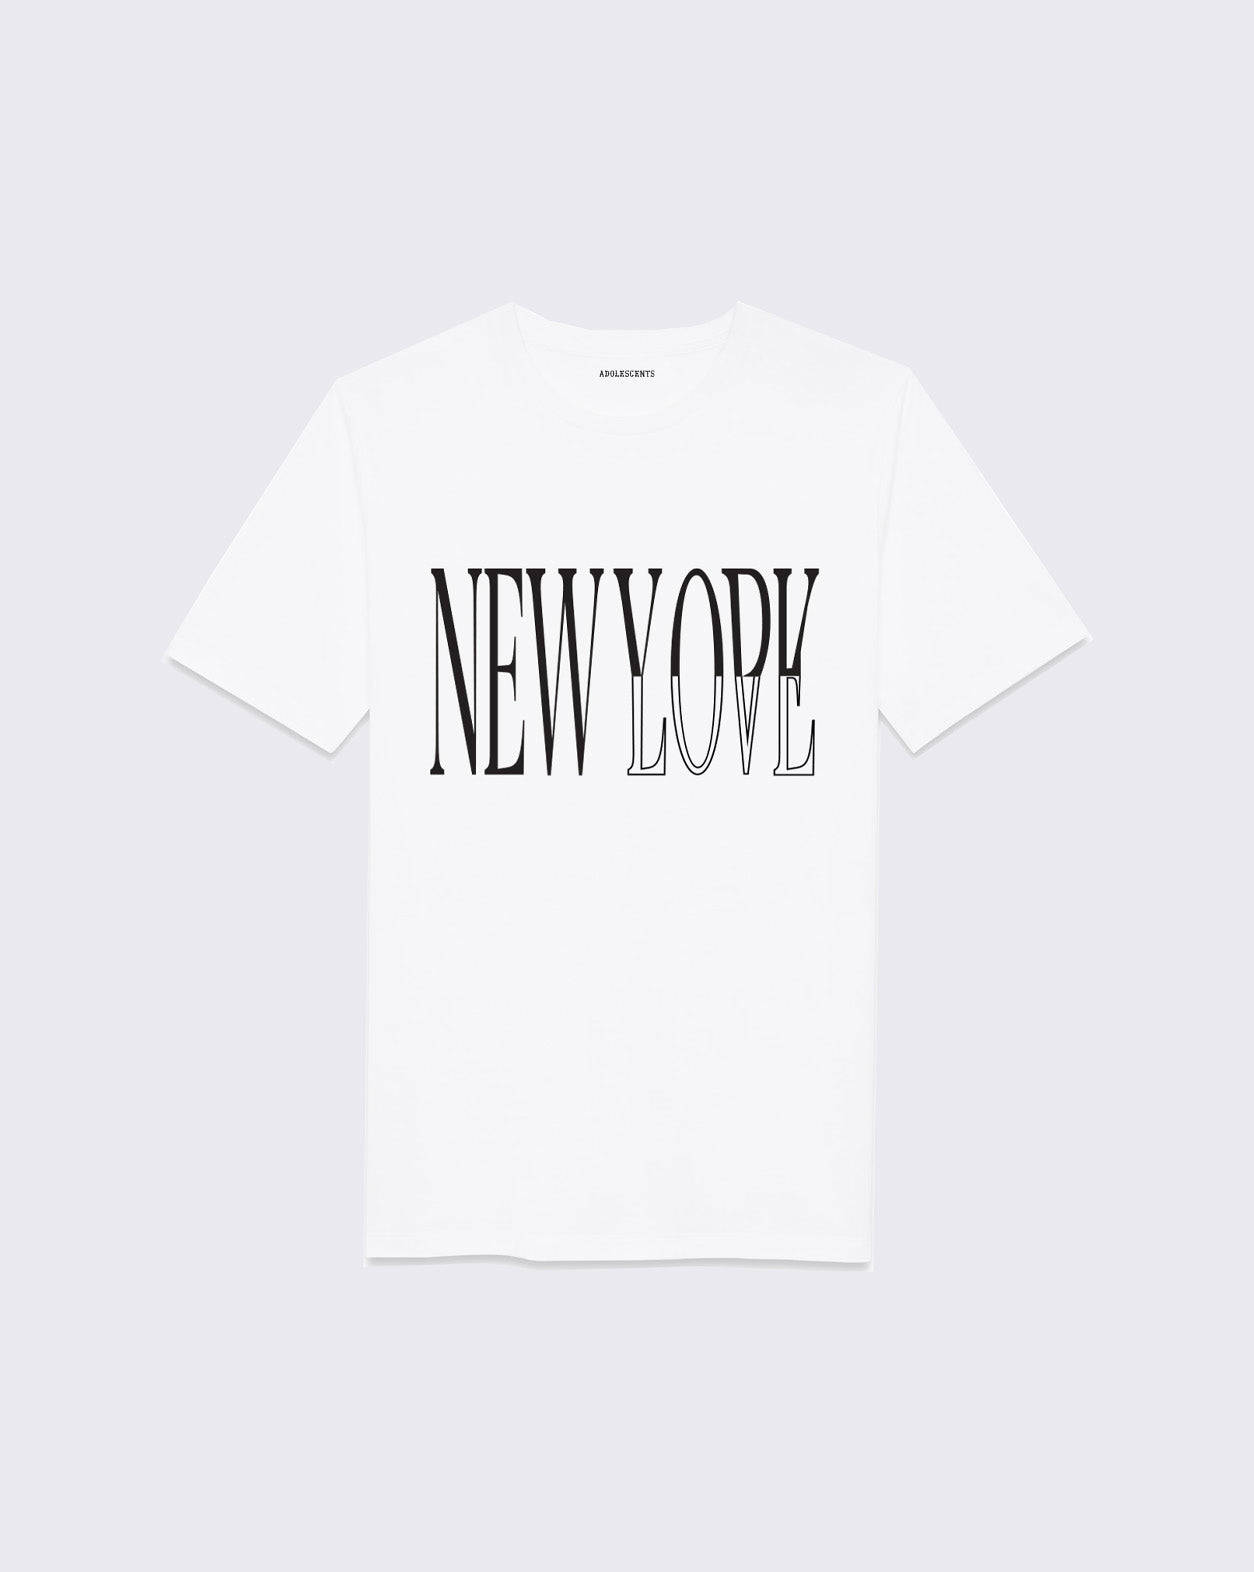 New York Love(Covid-19 Fund/100 % Proceeds)